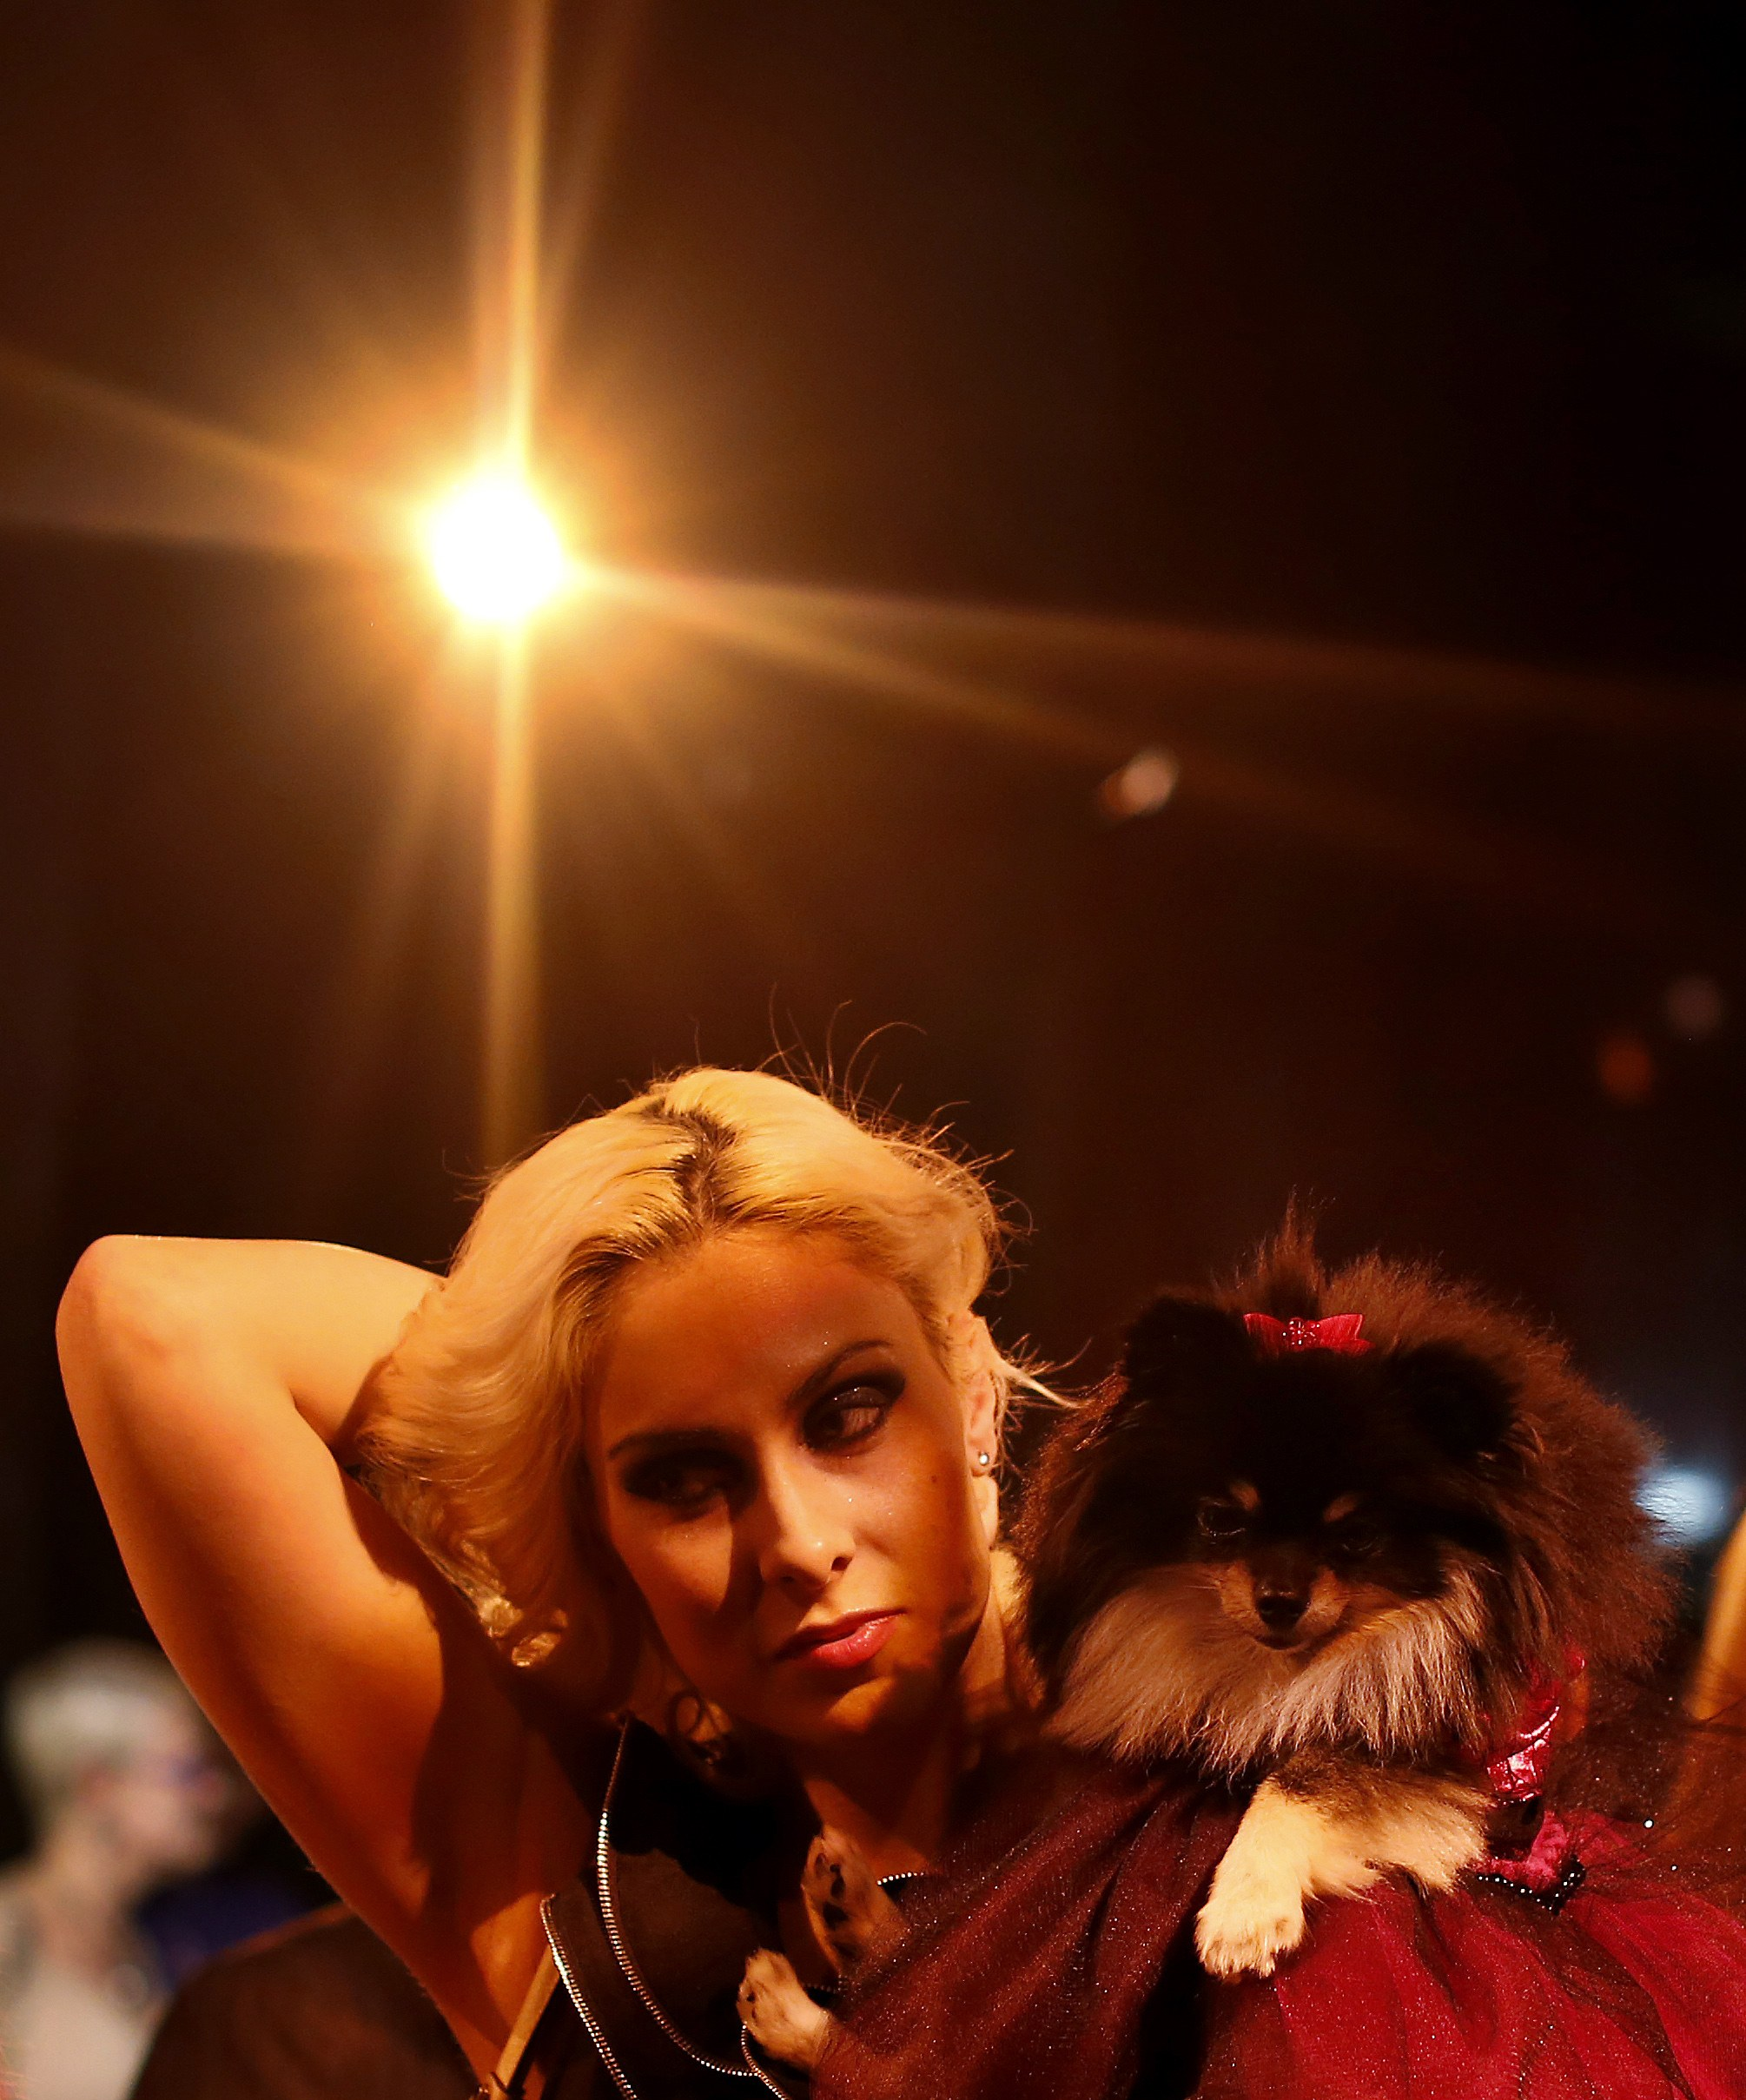 Victoria Viscardi brushes back her hair while holding her dog Gia Marie, a Pomeranian breed, before the start of the New Yorkie Runway Doggie Fashion Show in New York. ? Reuters Photo